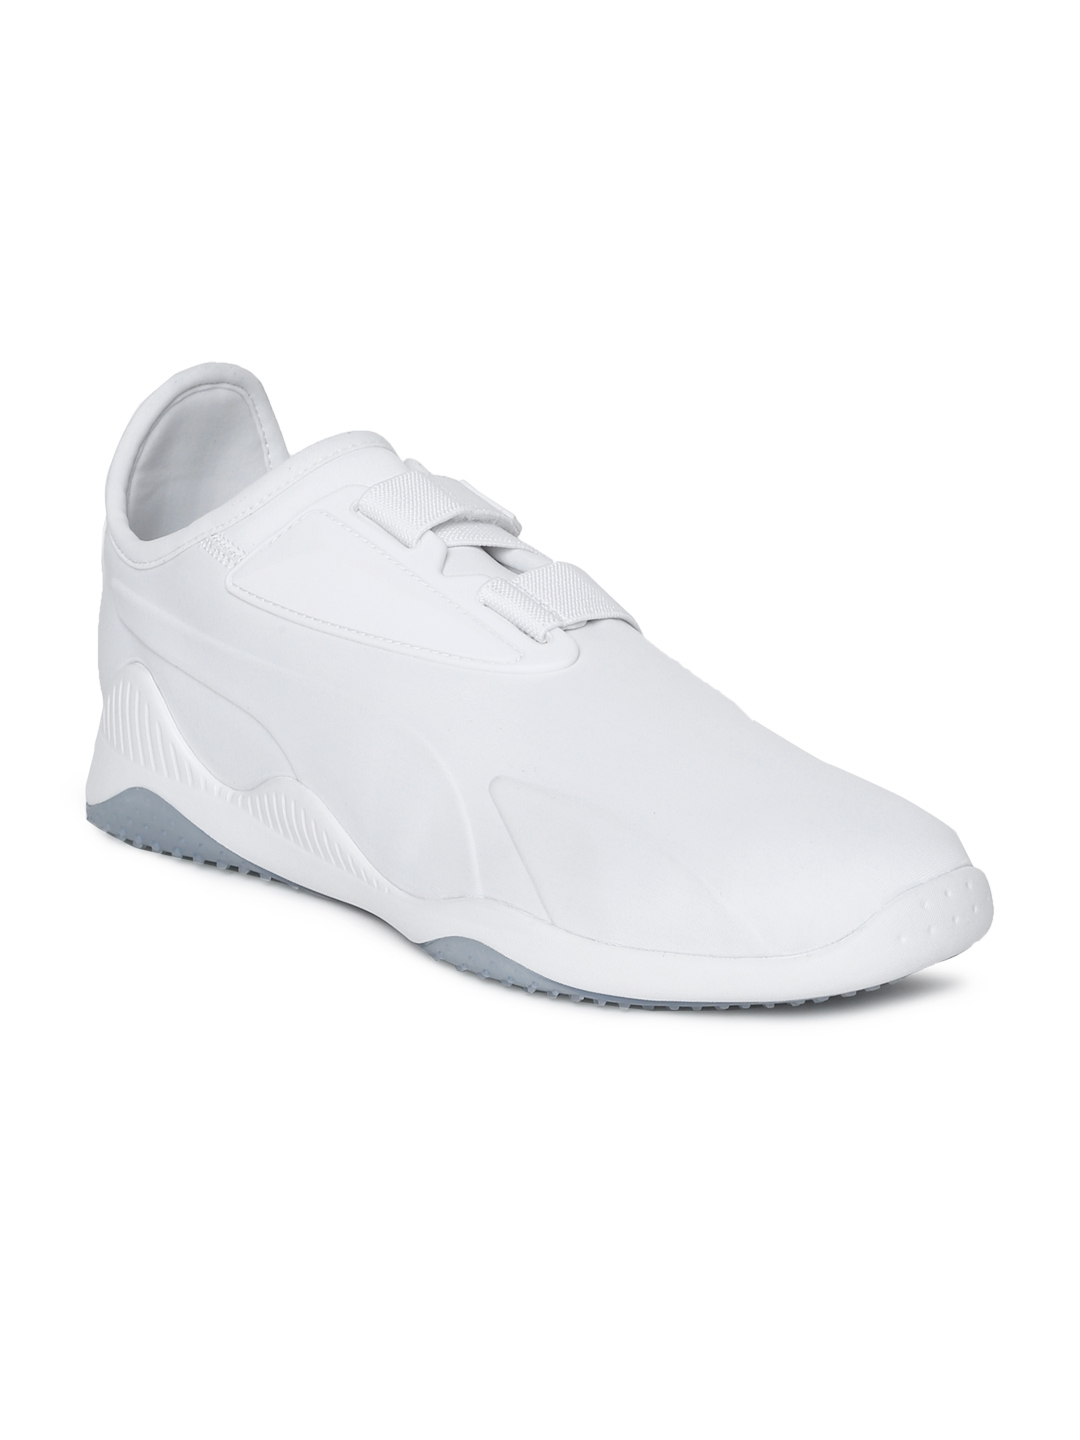 f4ec3c00dcdf04 Buy Puma Men White Mostro Core Tex Sneakers - Casual Shoes for Men ...